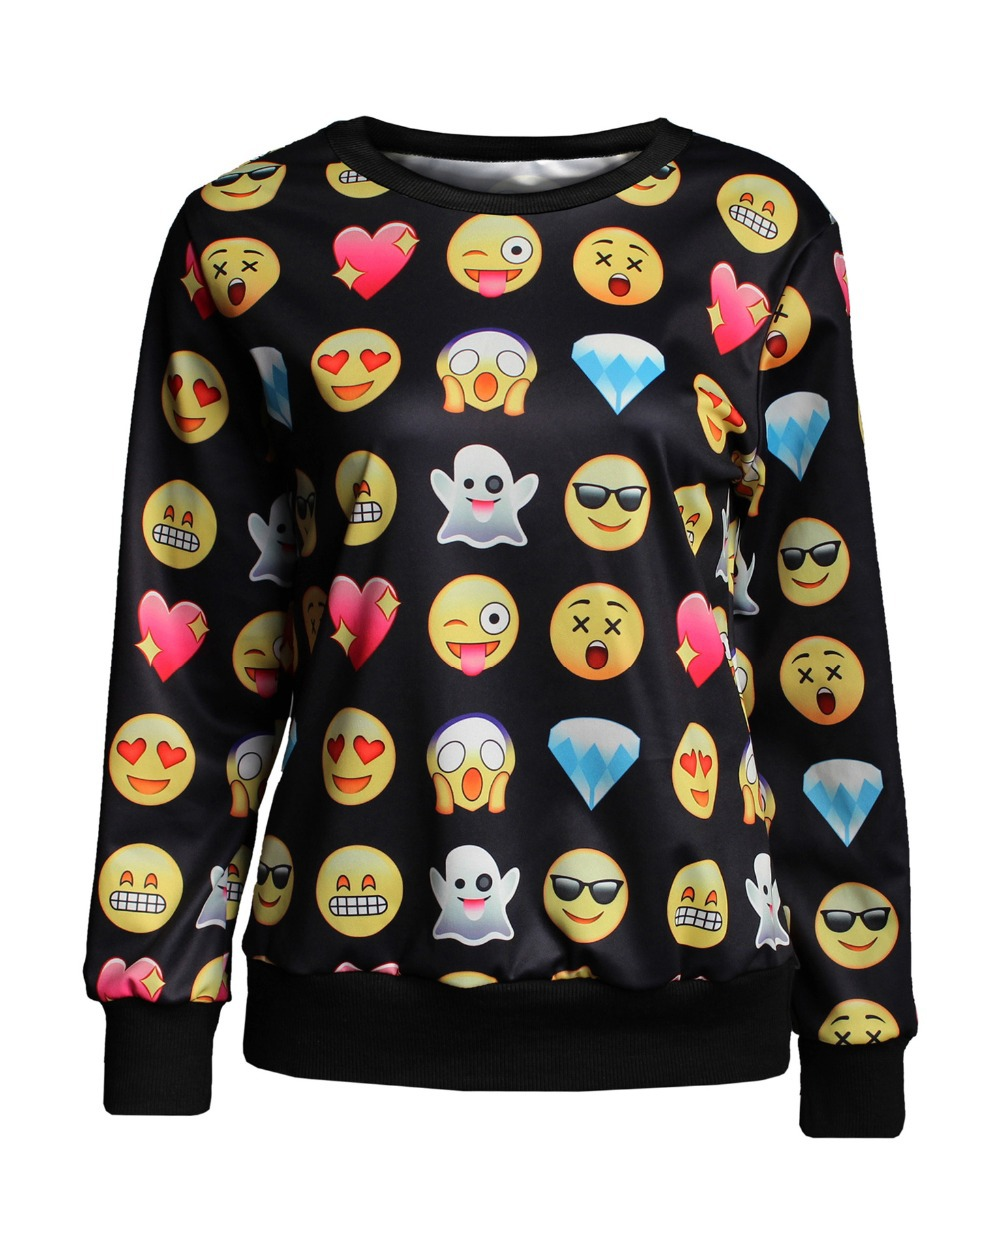 Gagaopt HOT 2014 New gaps Women/men100 emoji hoodie print Pullover emoticons funny hoodie sweatshirt clothes sudaderas mujer(China (Mainland))